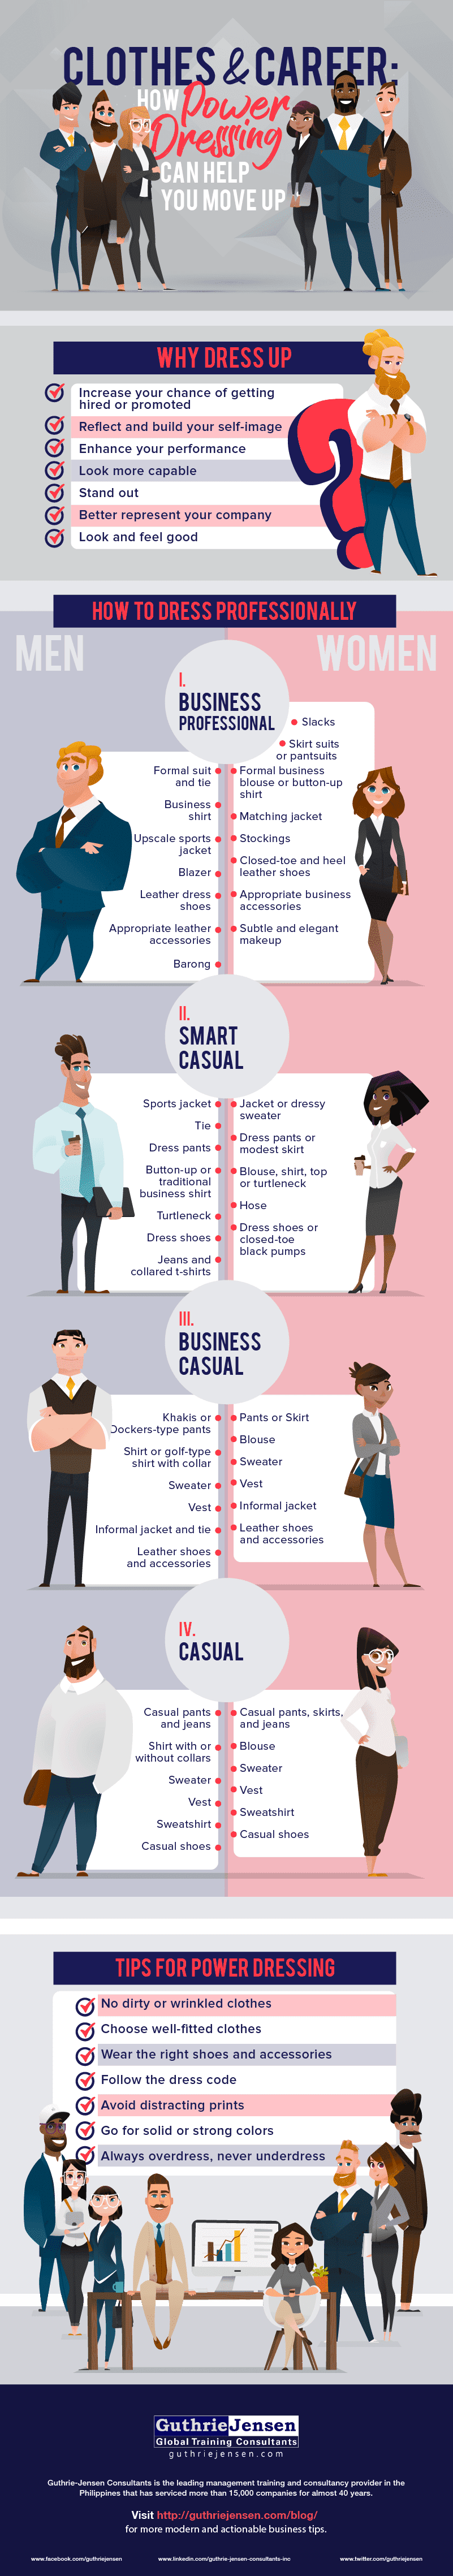 How power clothing can help you move up #infographic